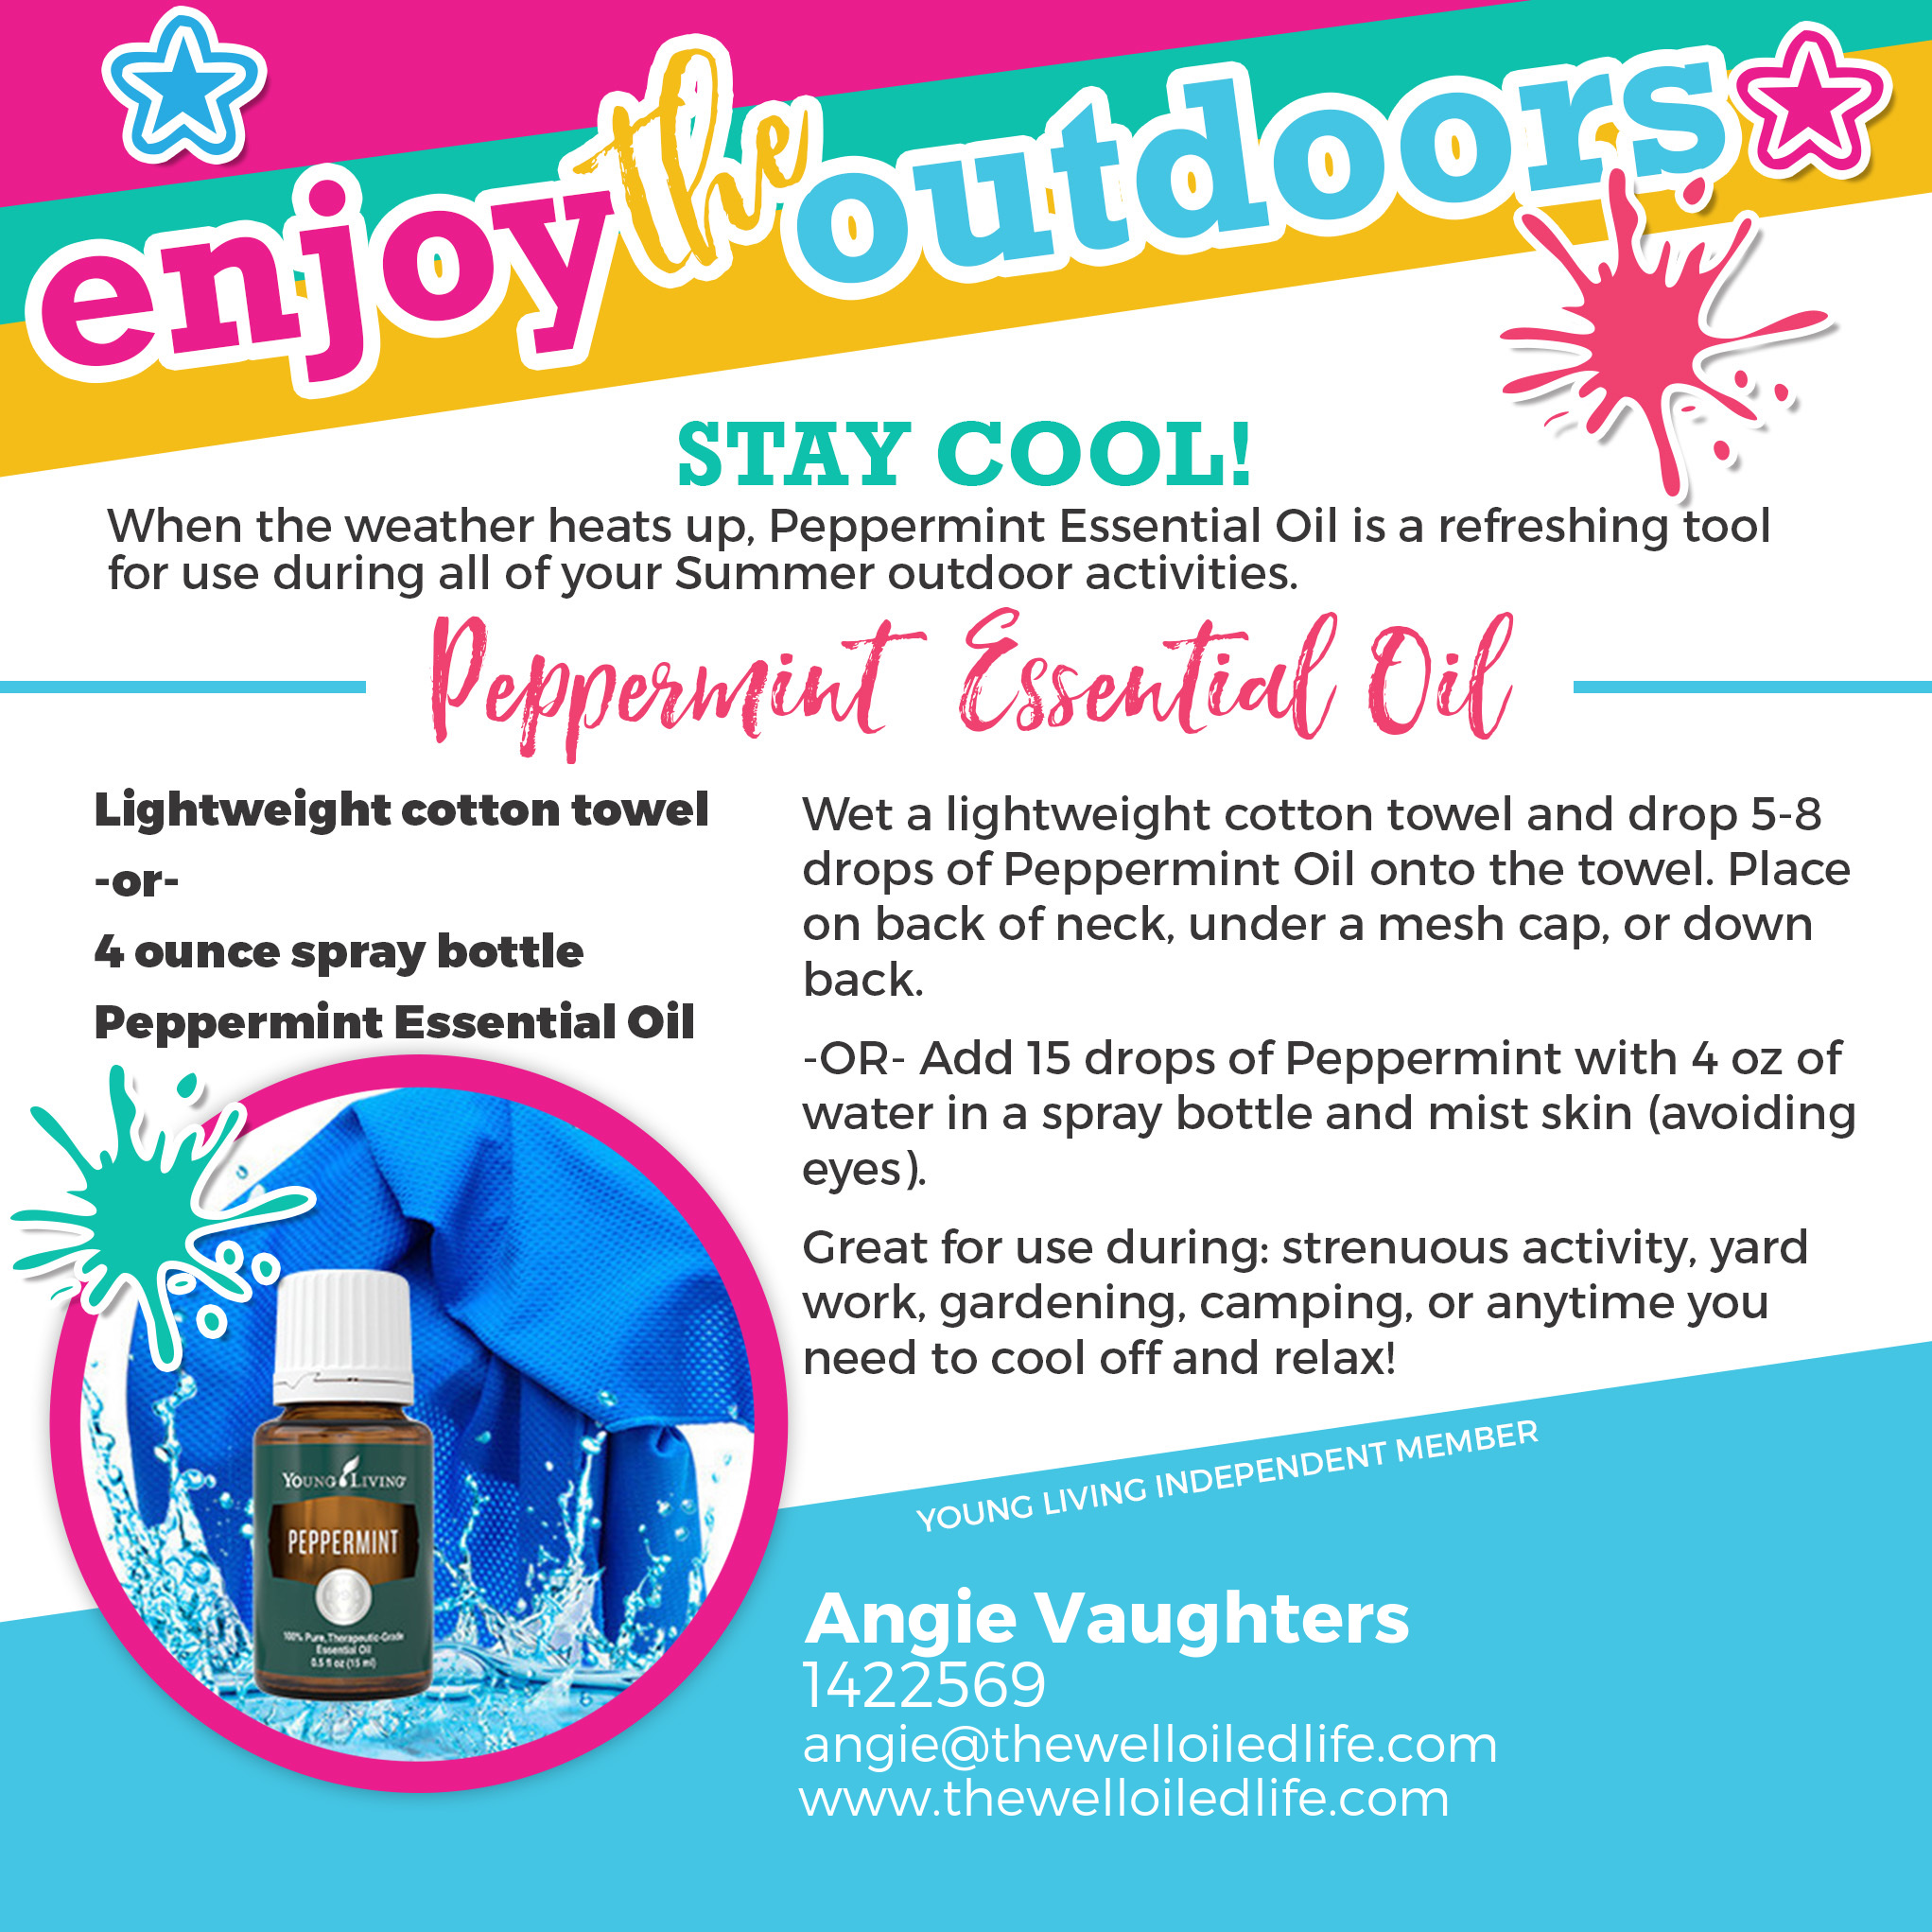 Essential Oils For Summertime Includes Recipes